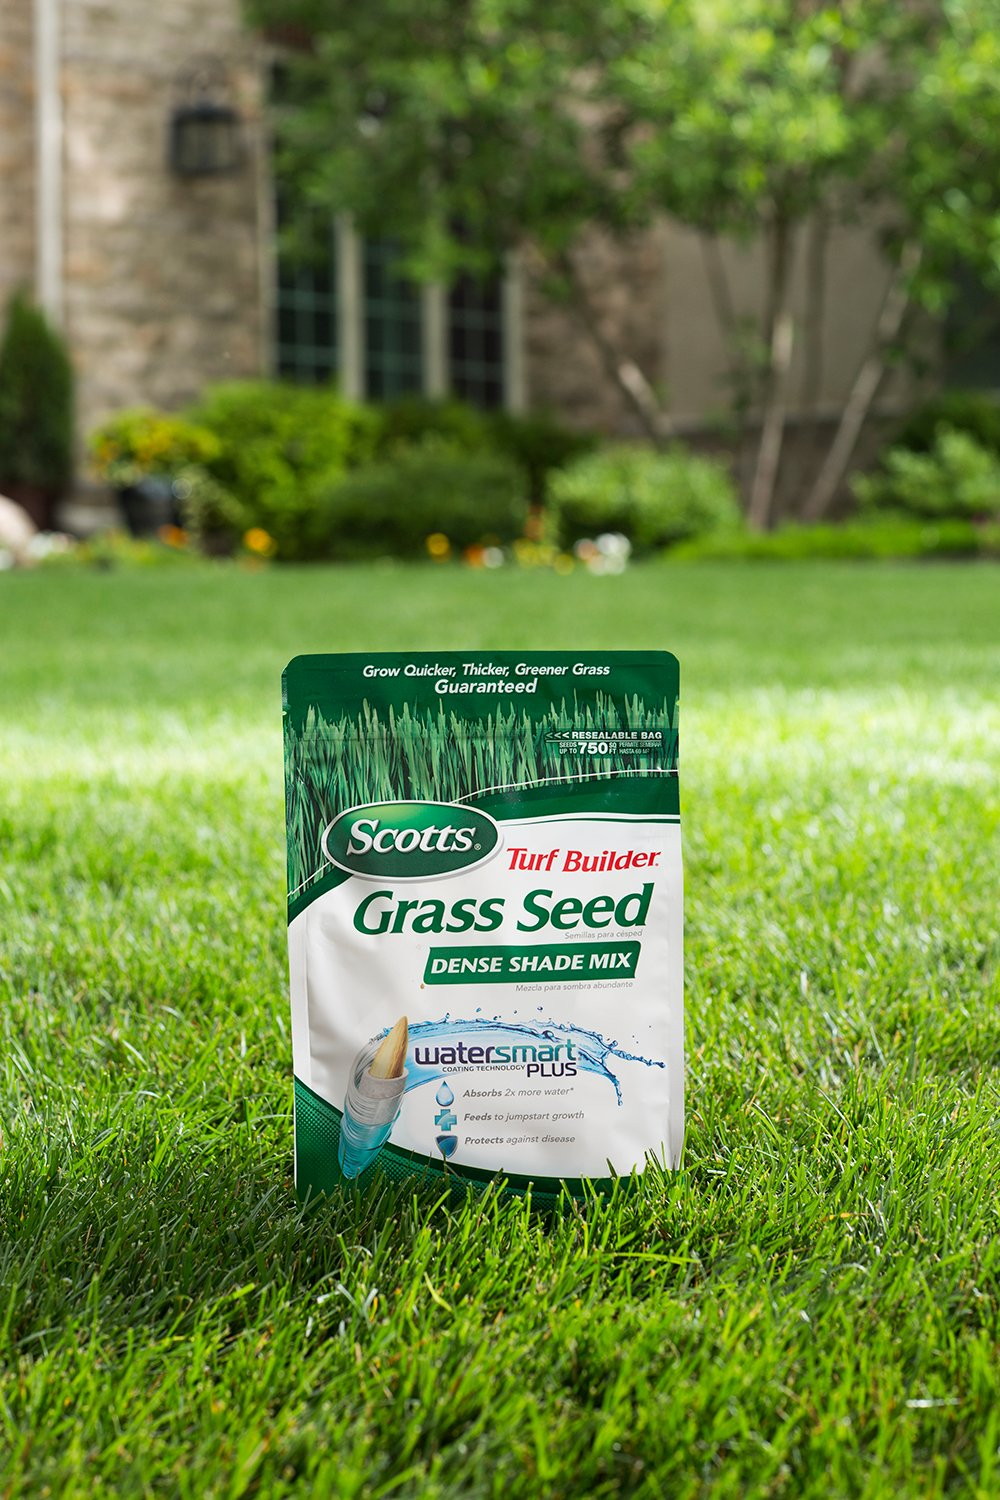 Amazon: Scotts Turf Builder Grass Seed  Dense Shade Mix, 7pound (not  Sold In Louisiana): Patio, Lawn & Garden